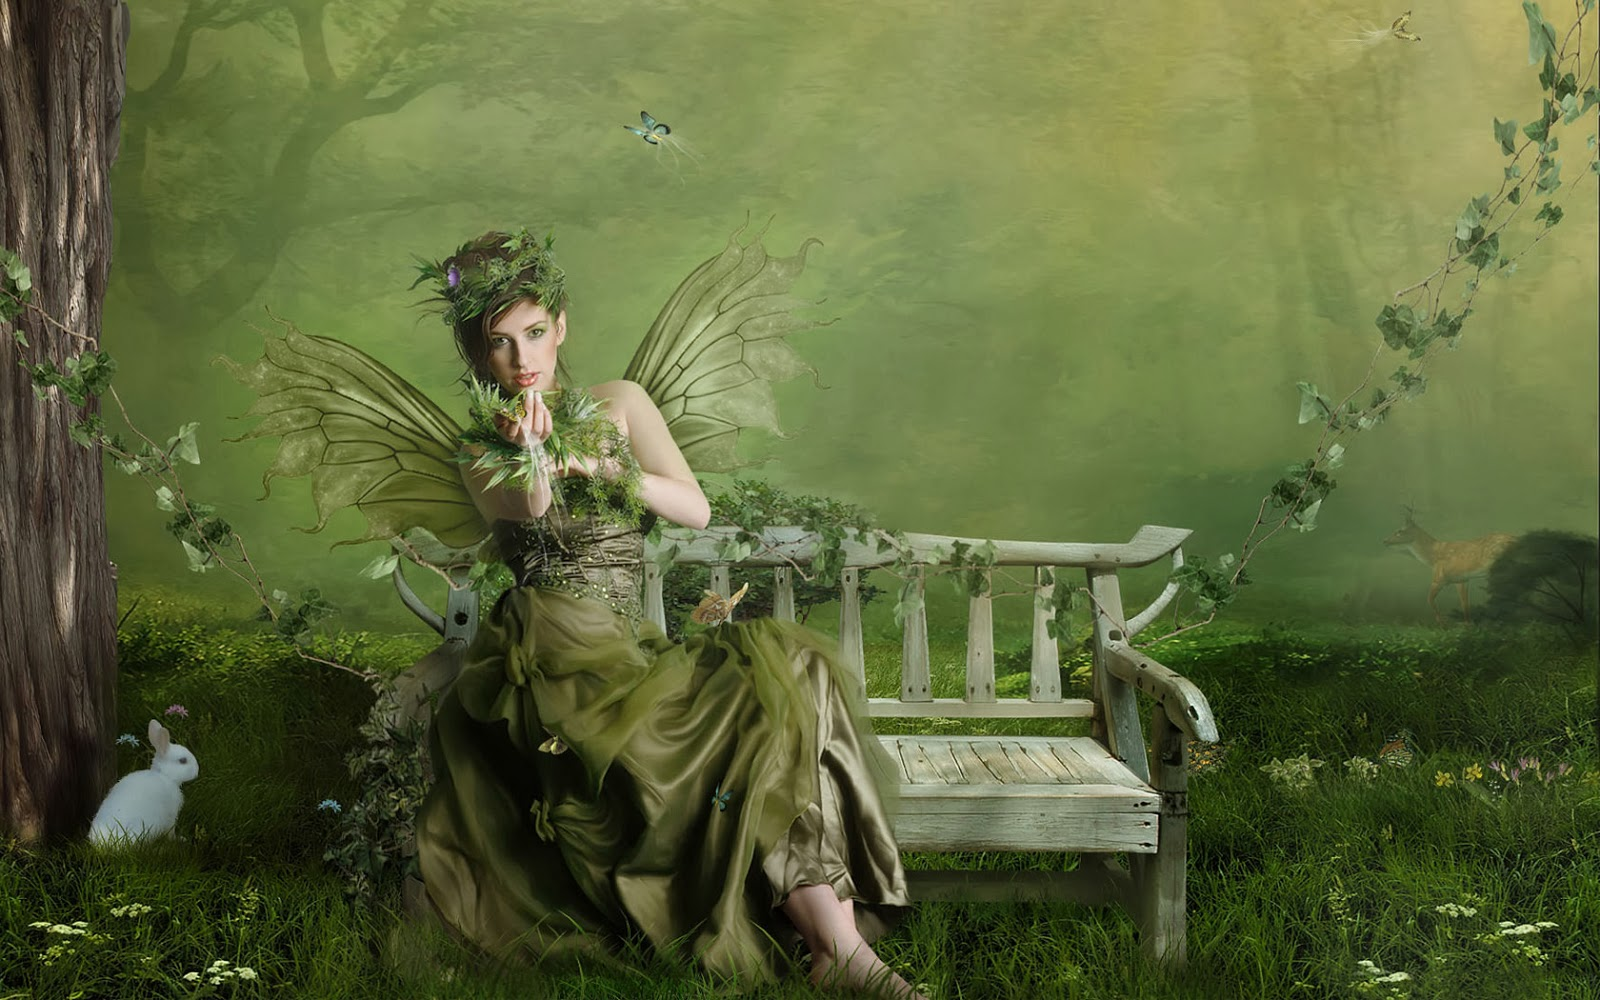 green angel in springtime - photo #9